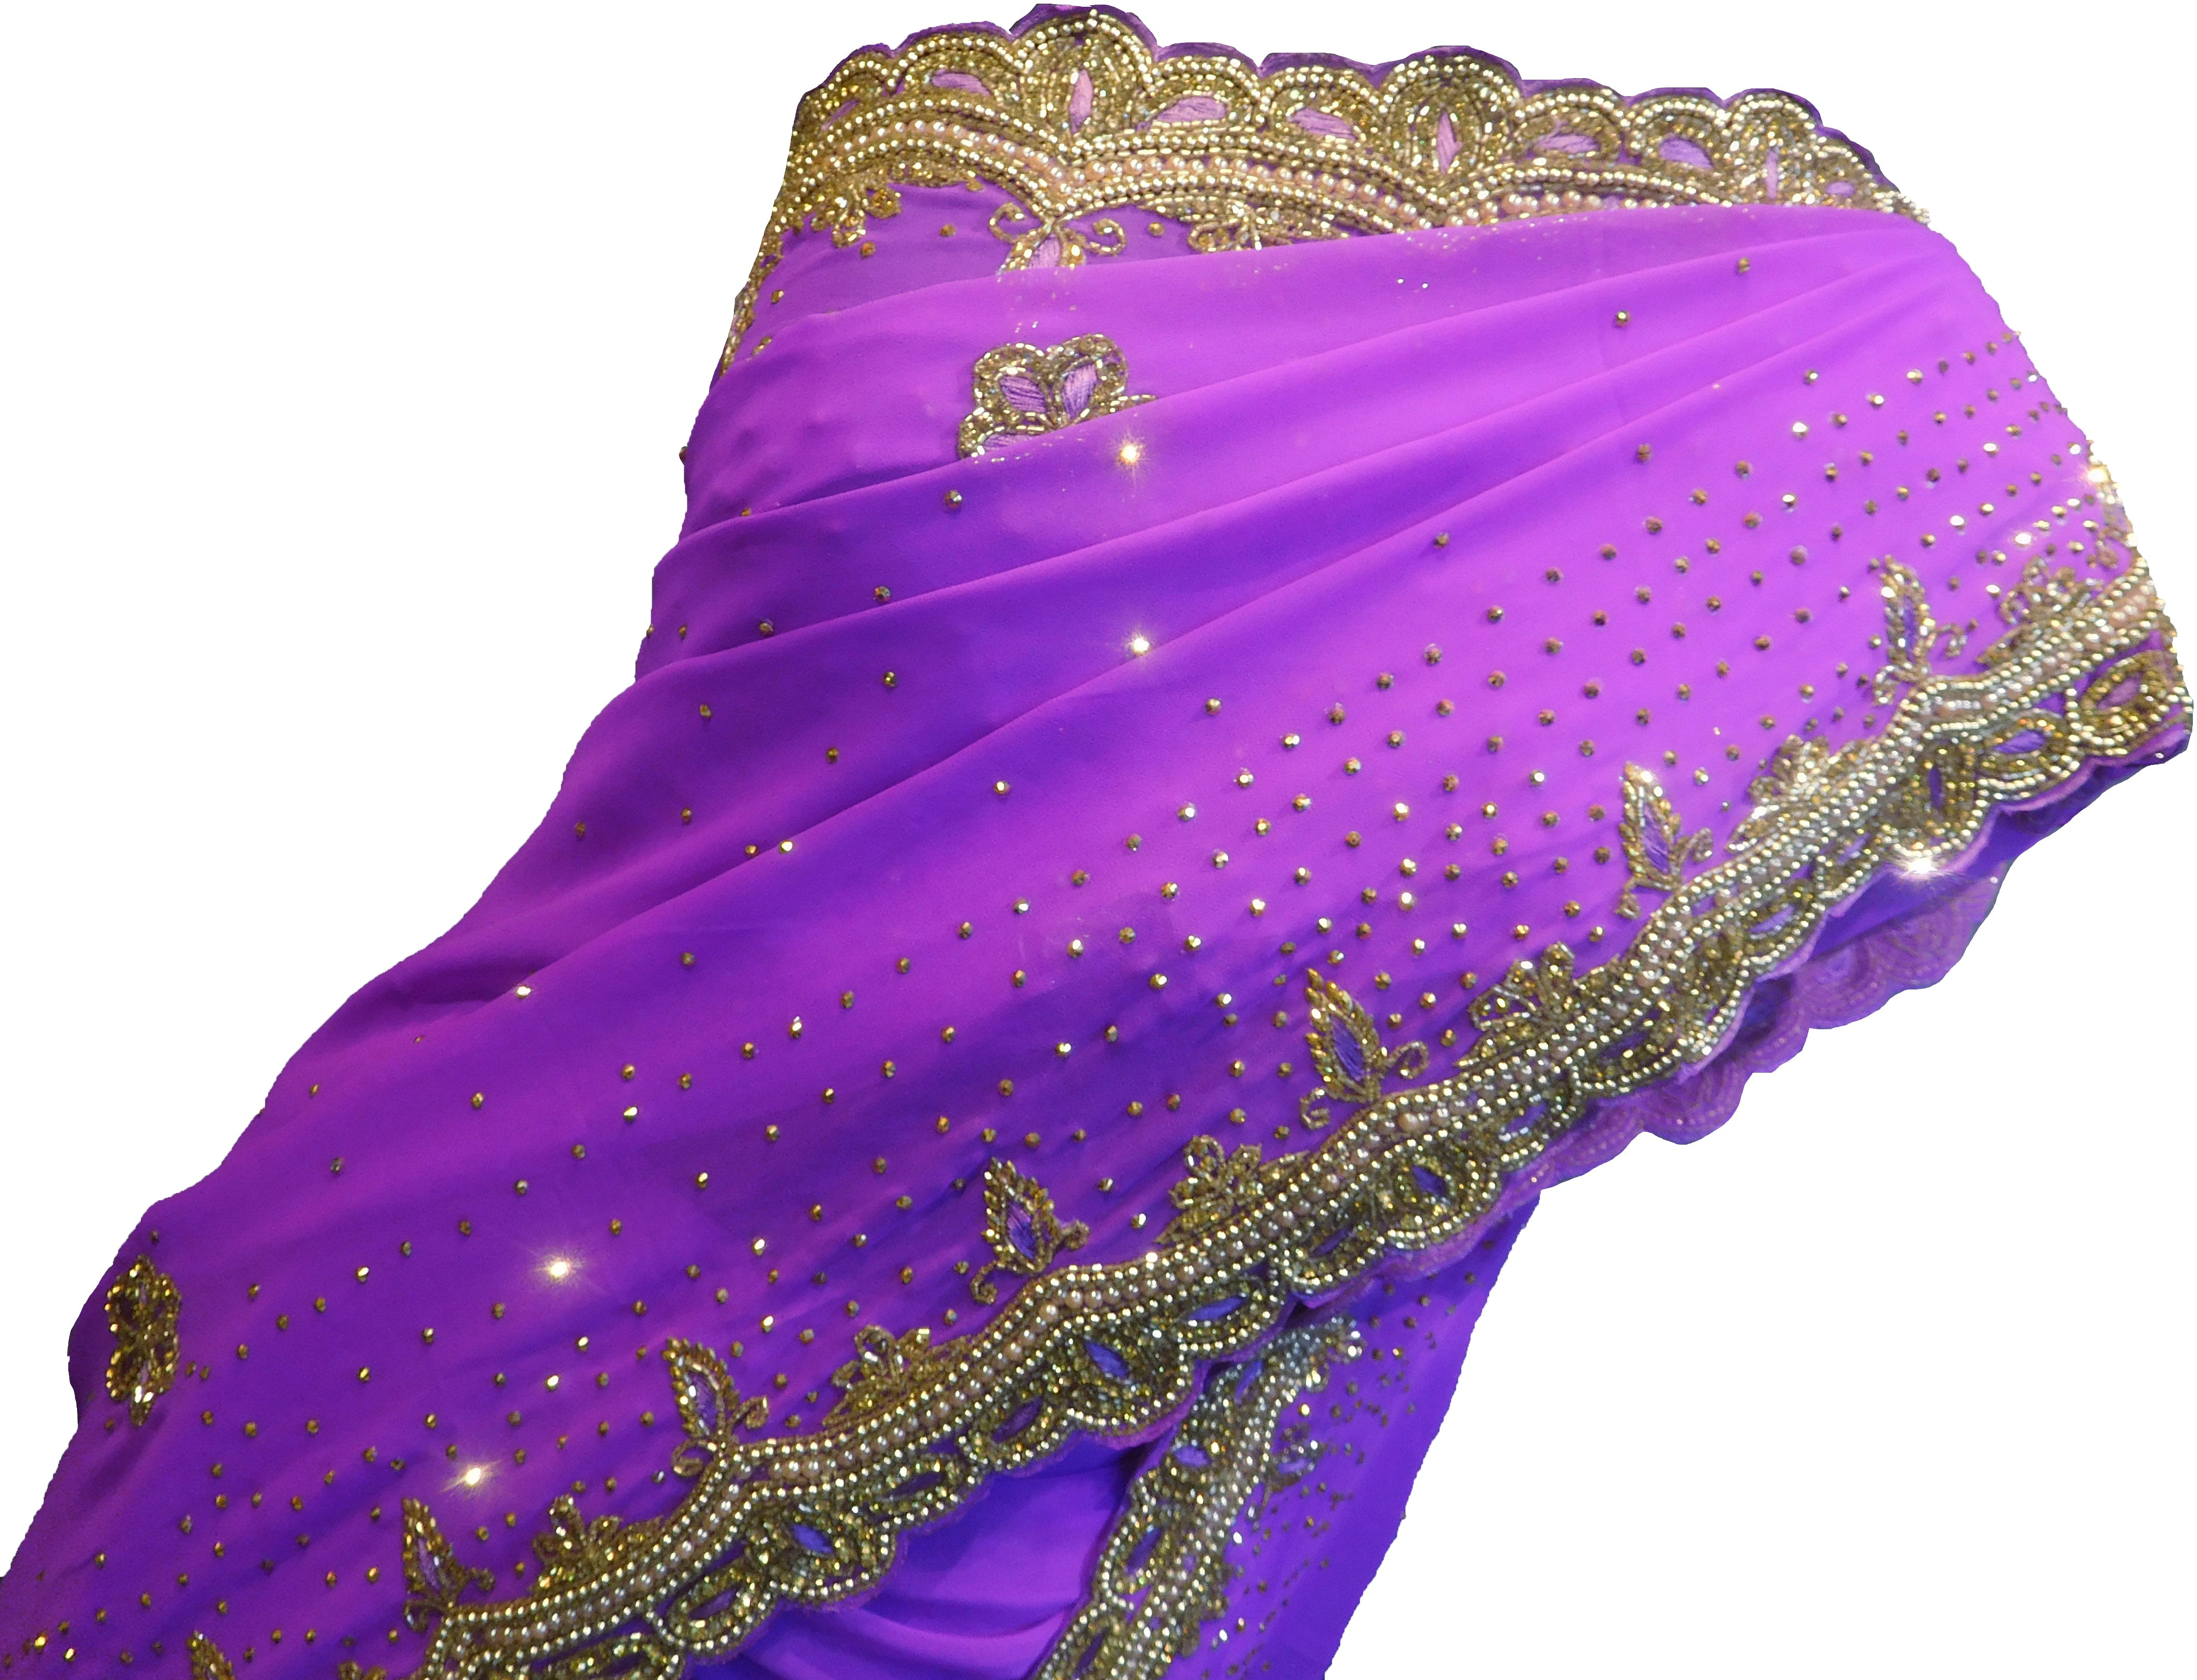 SMSAREE Purple Designer Wedding Partywear Georgette Cutdana Stone Beads Thread & Bullion Hand Embroidery Work Bridal Saree Sari With Blouse Piece F354